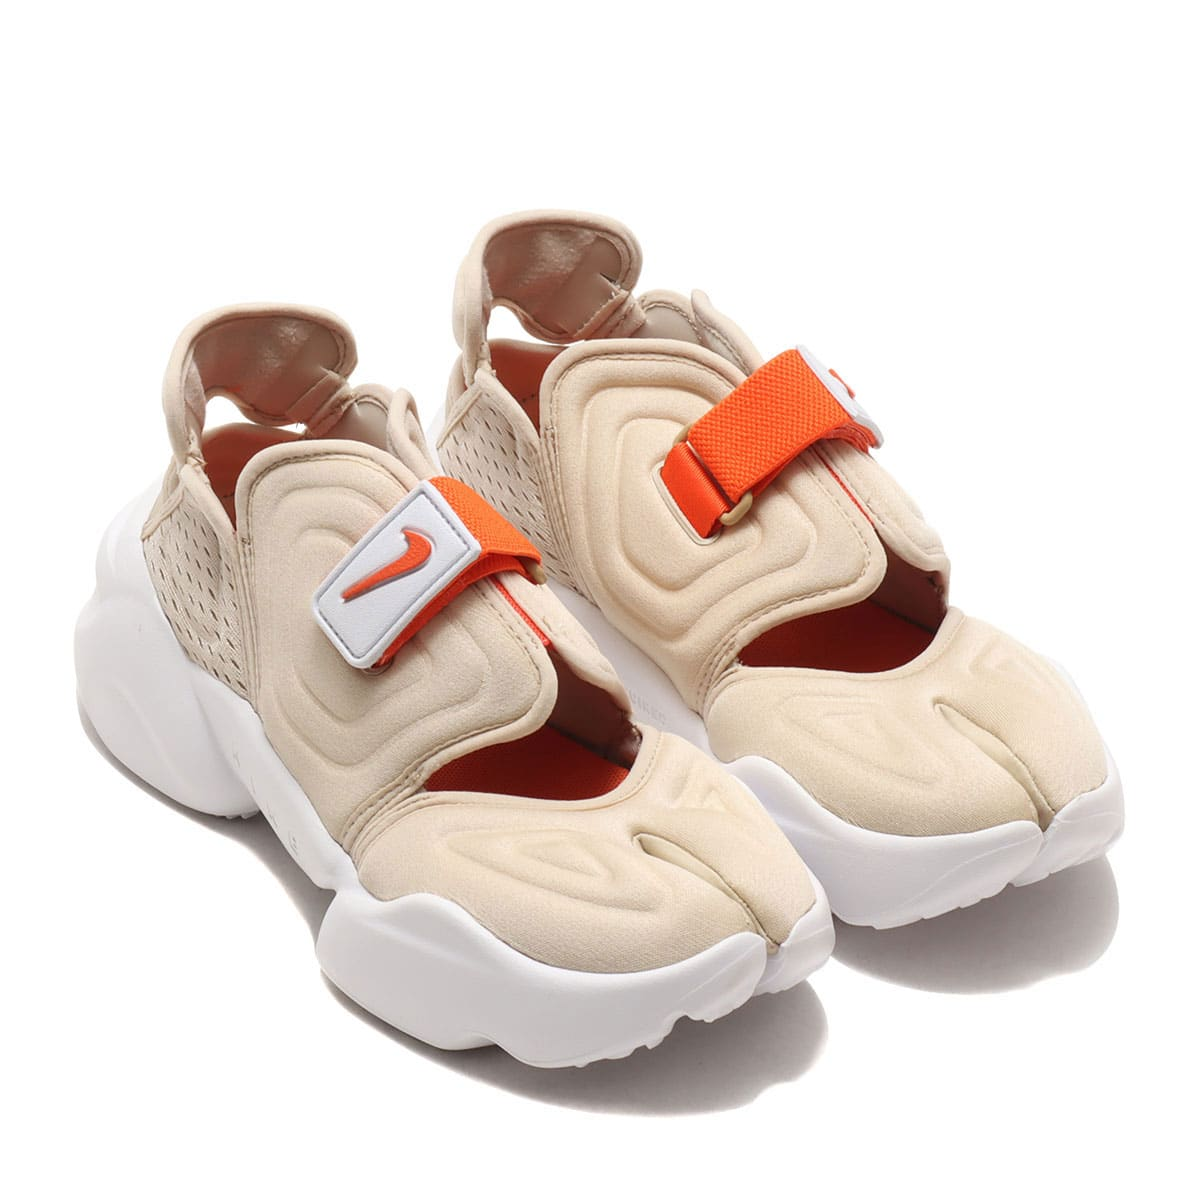 NIKE W AQUA RIFT RATTAN/ORANGE-WHITE-RATTAN 21SU-I_photo_large